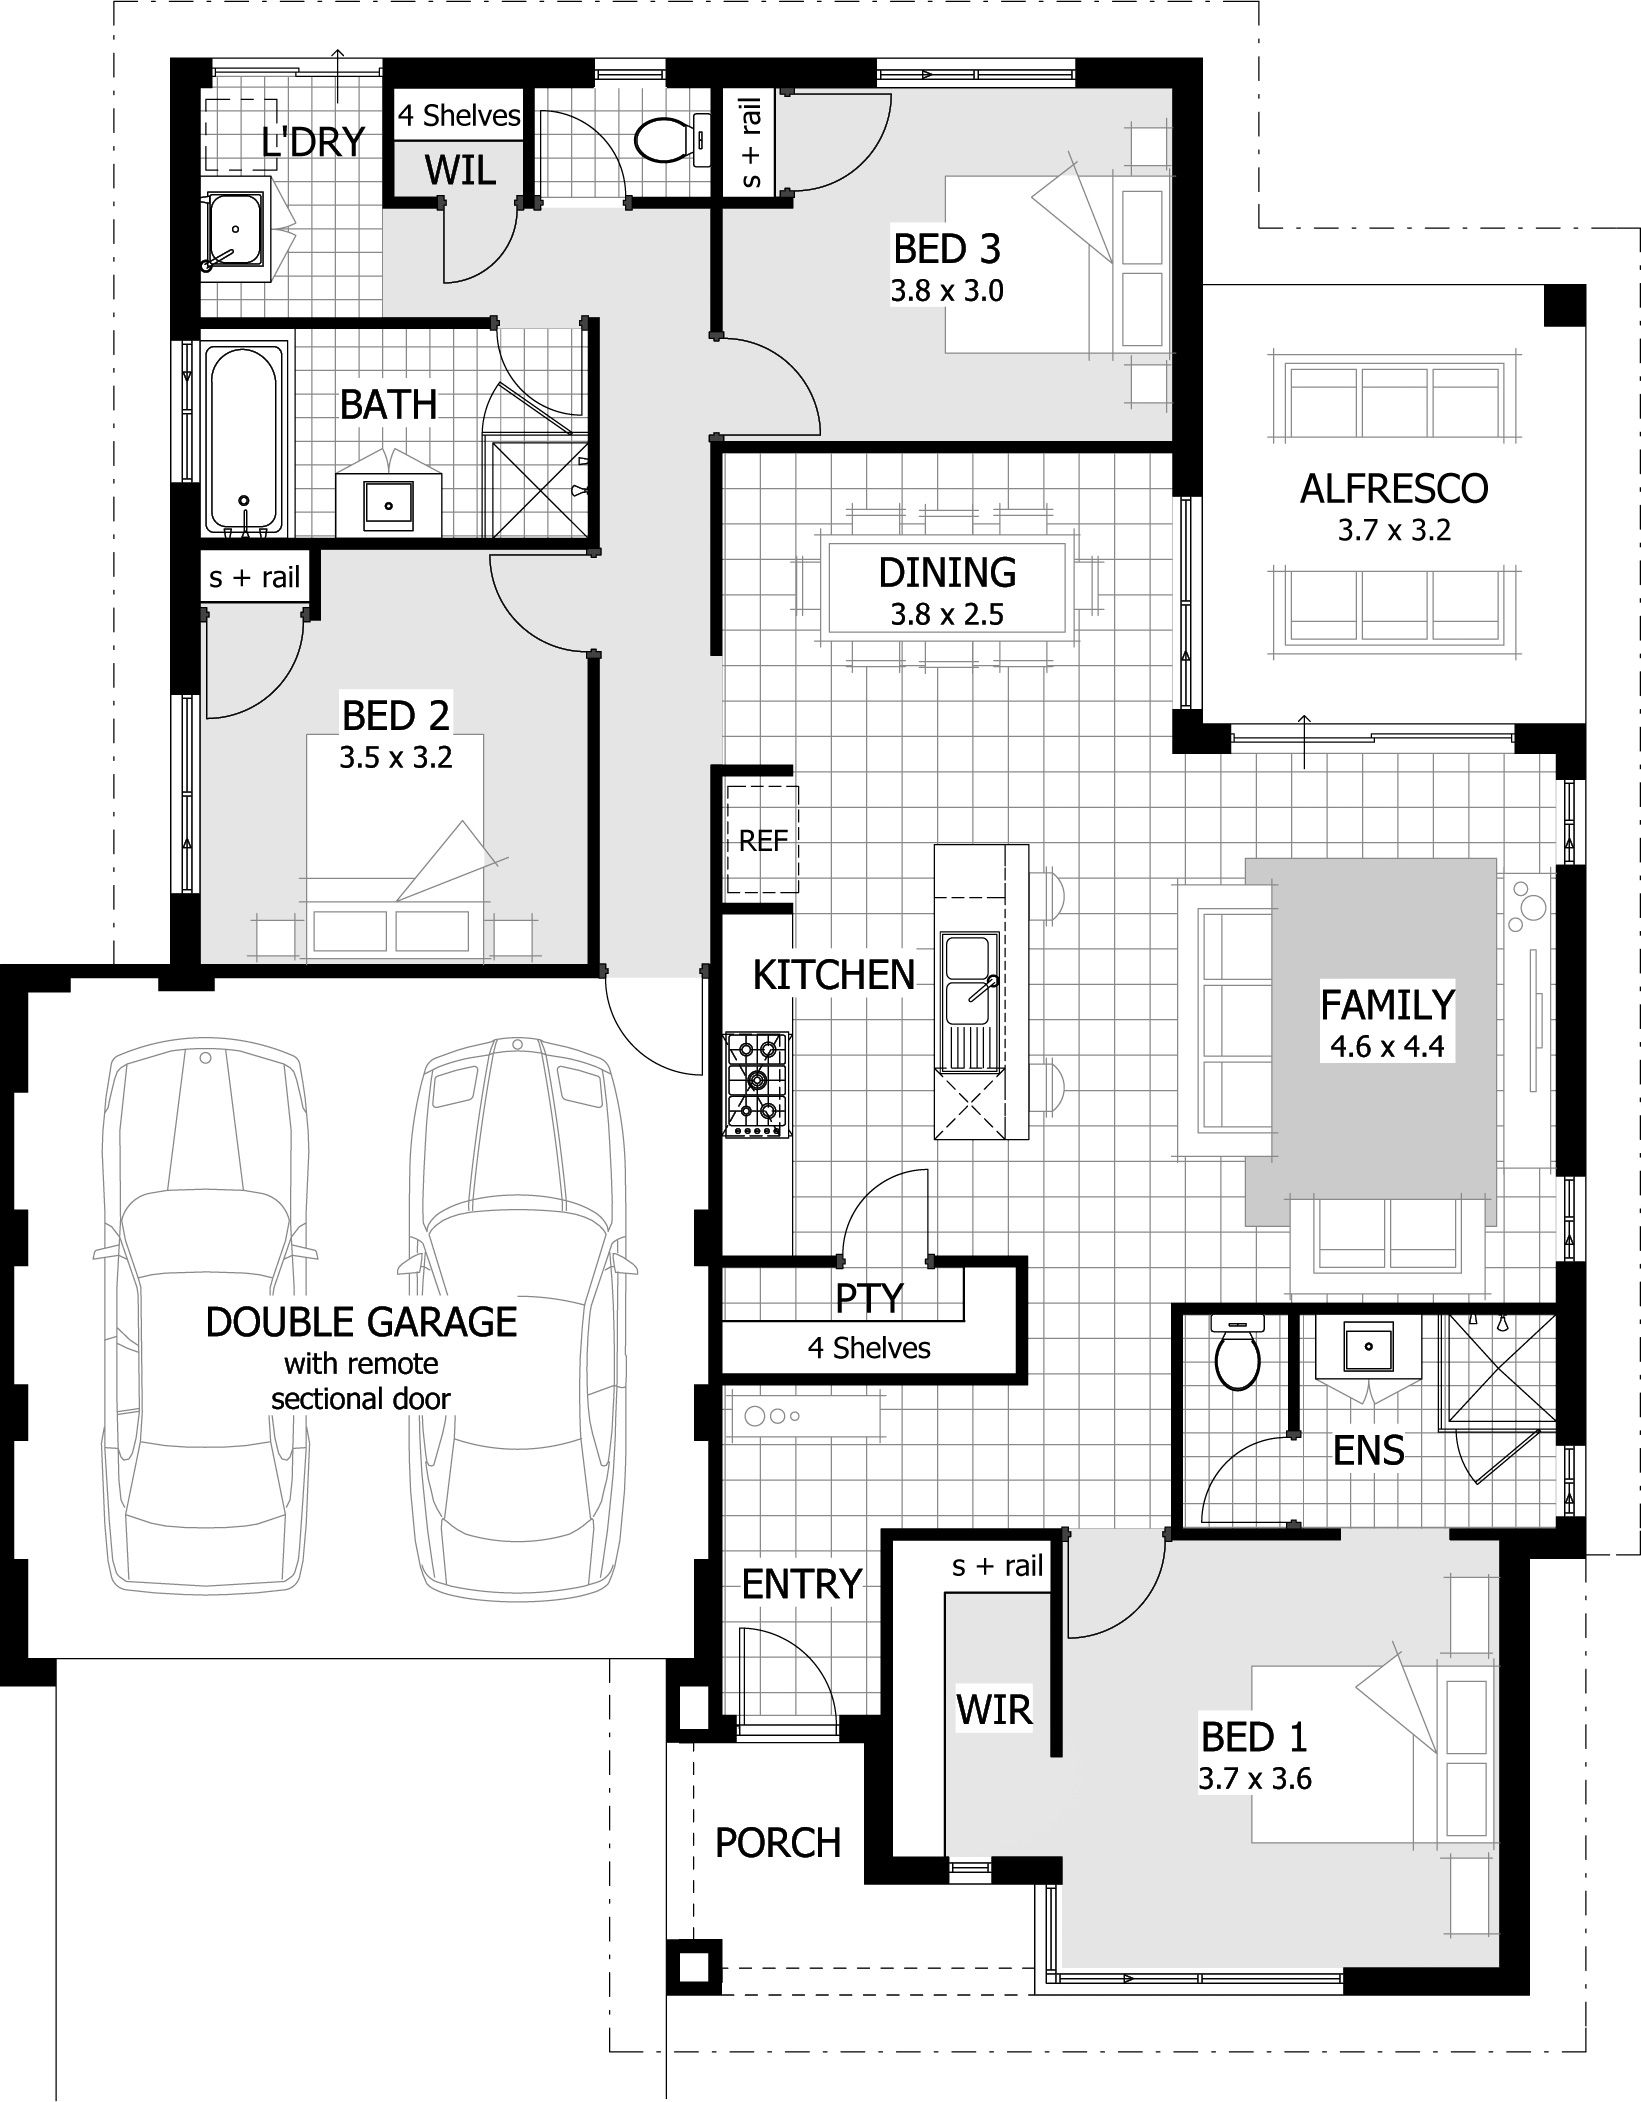 Valencia floor plan contempo floorplans pinterest for Layout design of bungalows